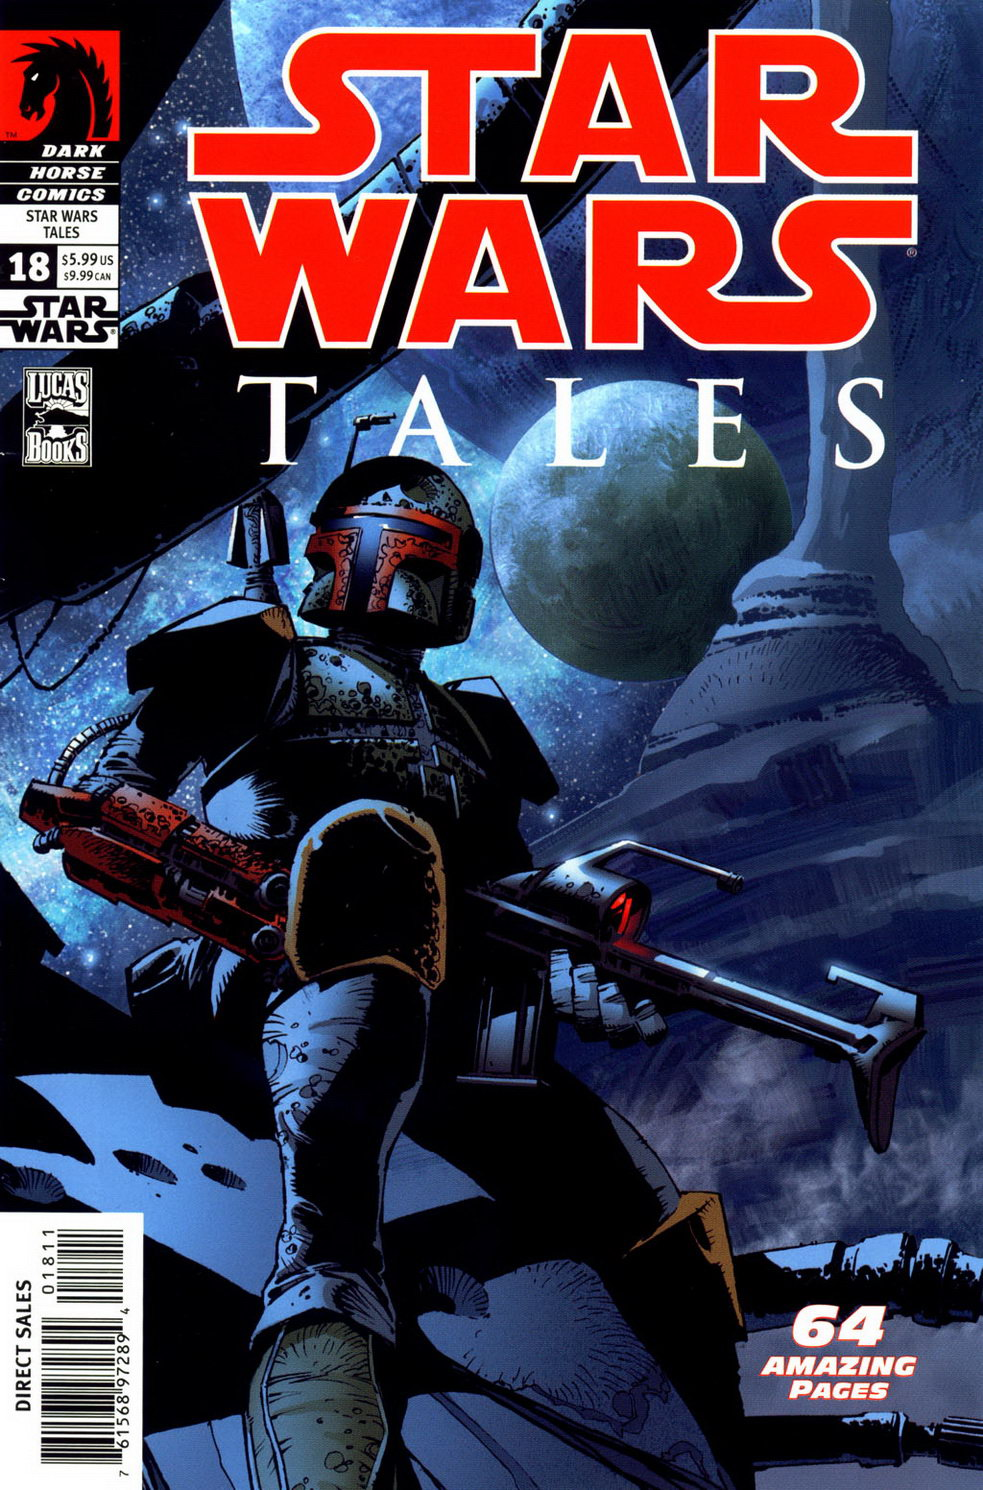 Star Wars Tales: Revenants